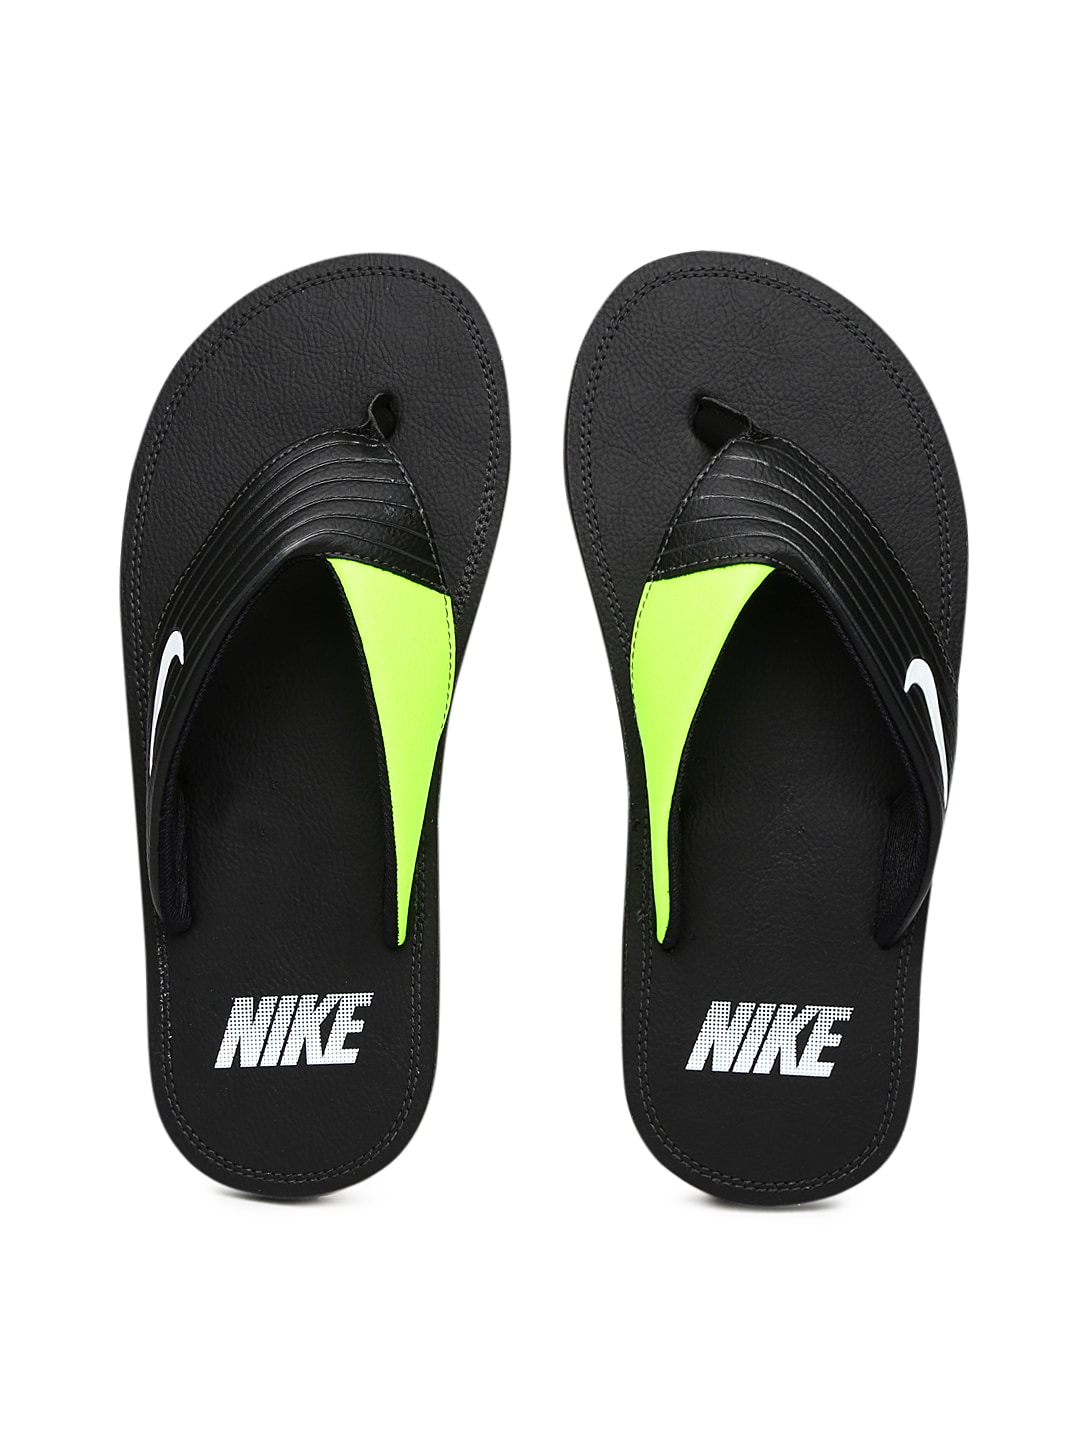 b76fed692d0fd3 Nike 636165-018 Men Black And Neon Green Chroma Thong Iii Flip Flops- Price  in India